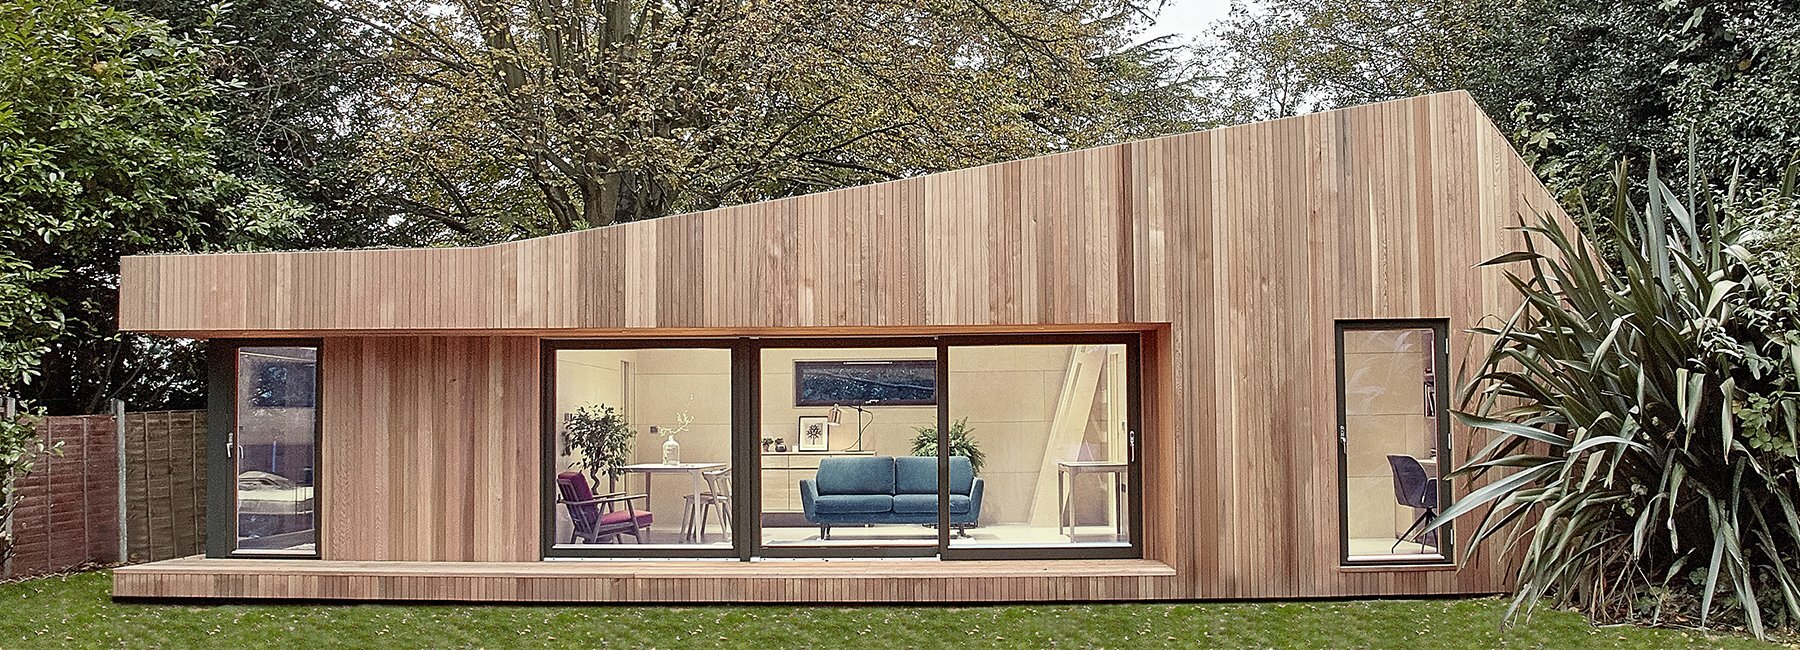 ecospace-studio-ipt-architects-england-exterior-humble-homes